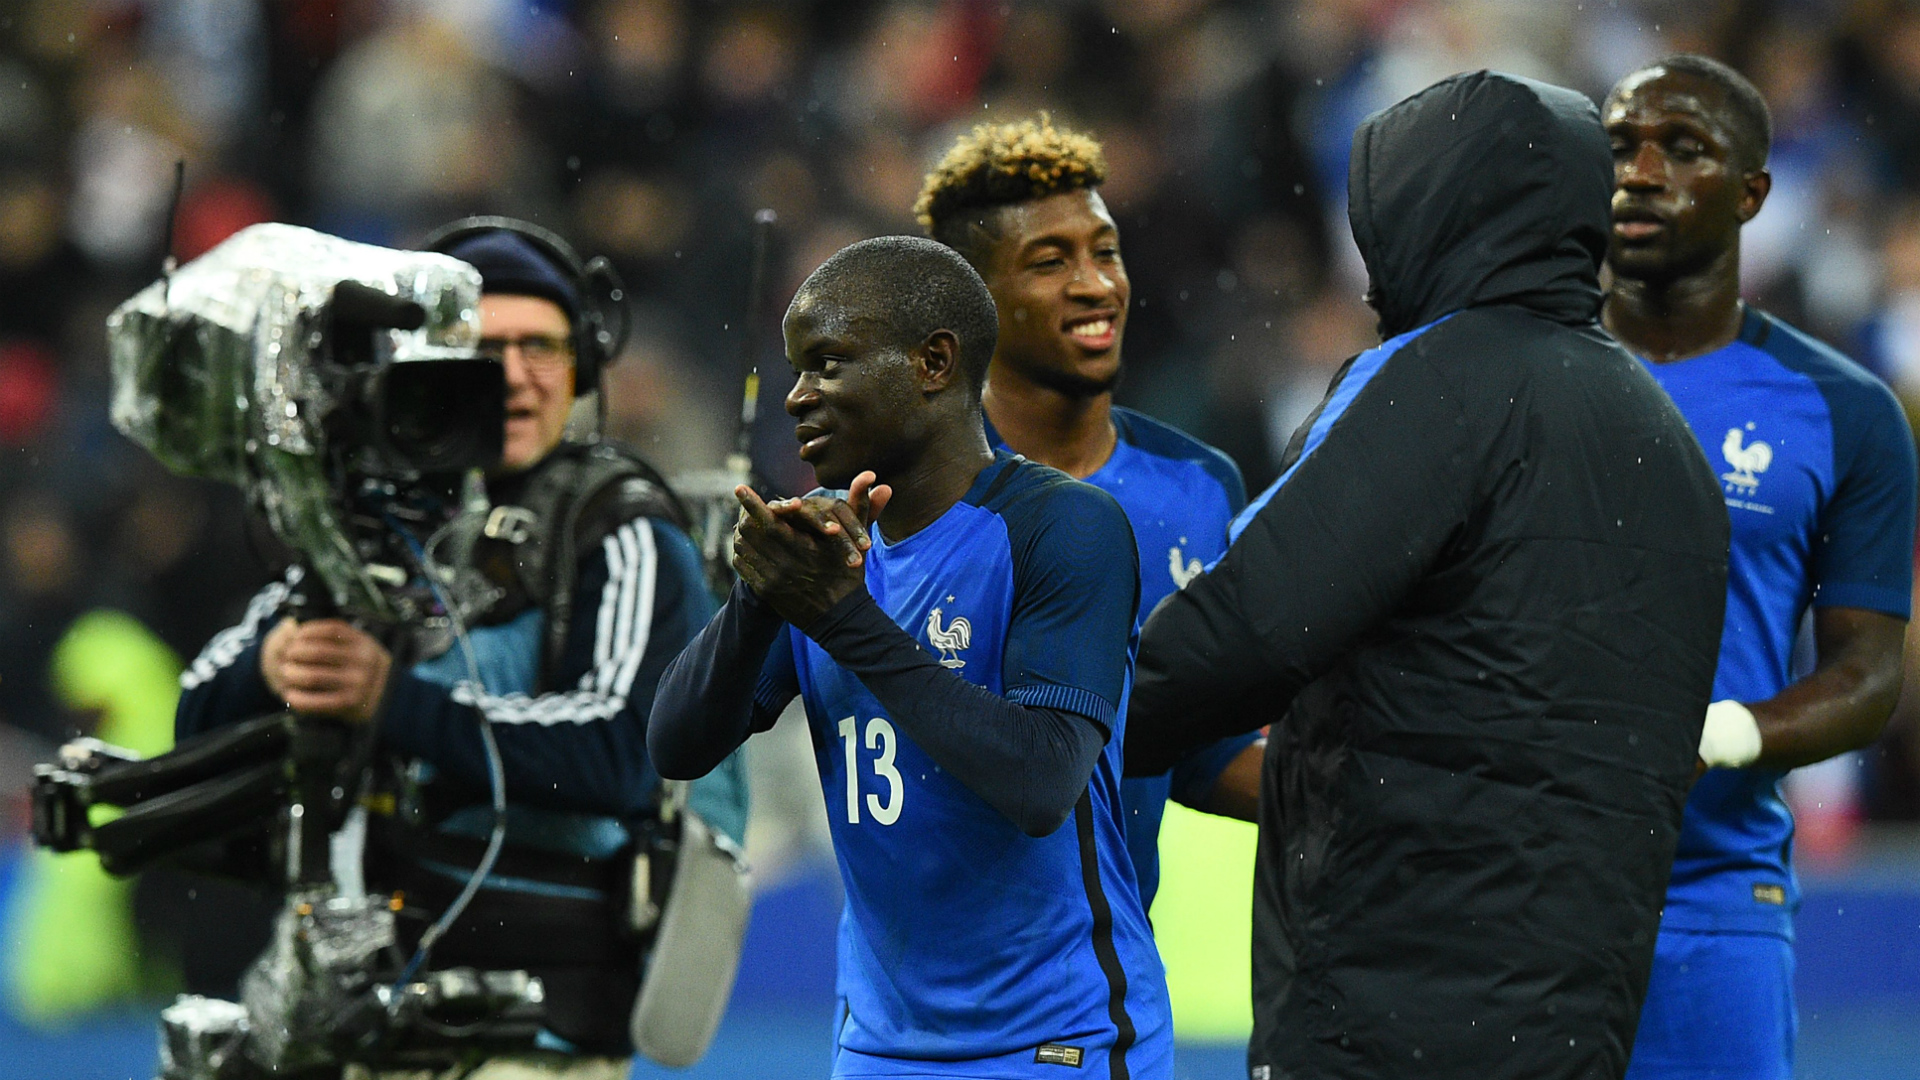 France falls in love with N Golo Kante after just 10 days